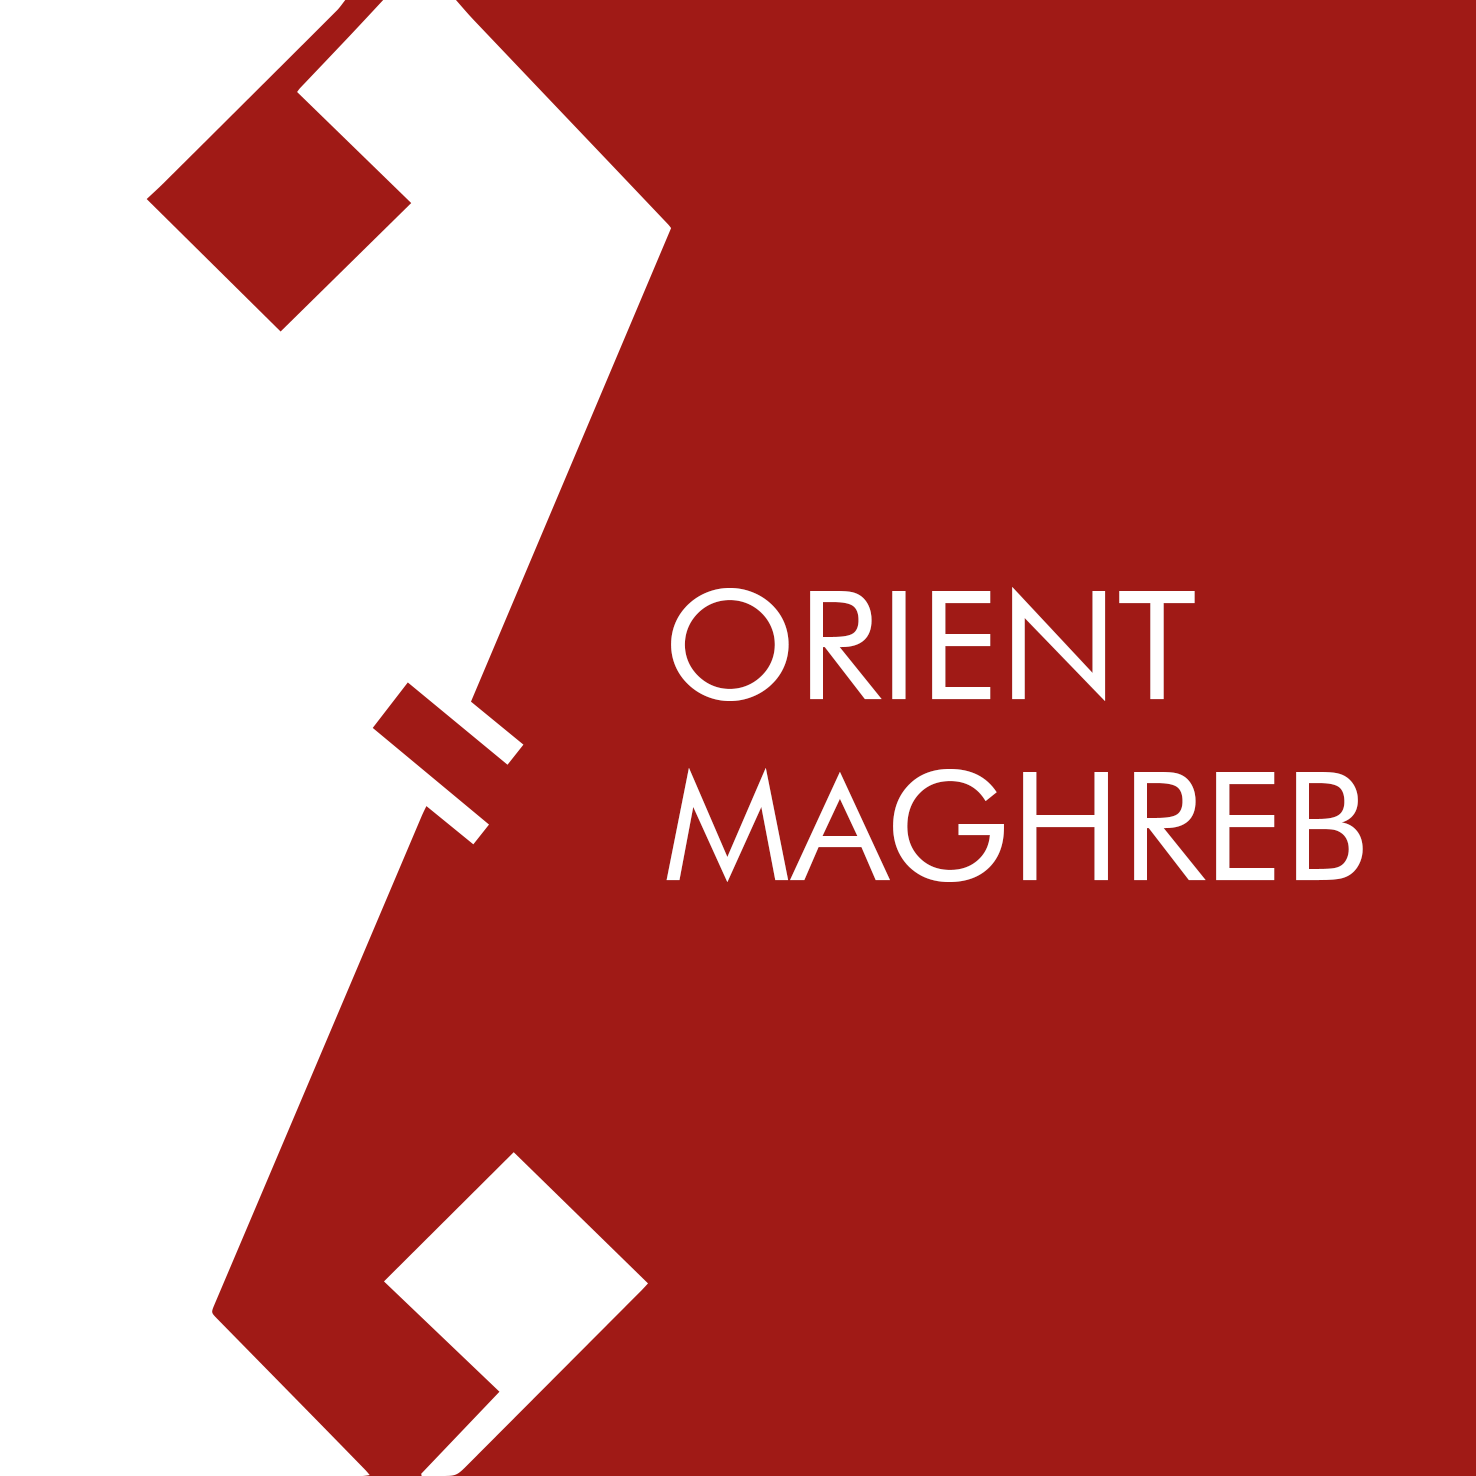 ORIENT - MAGHREB